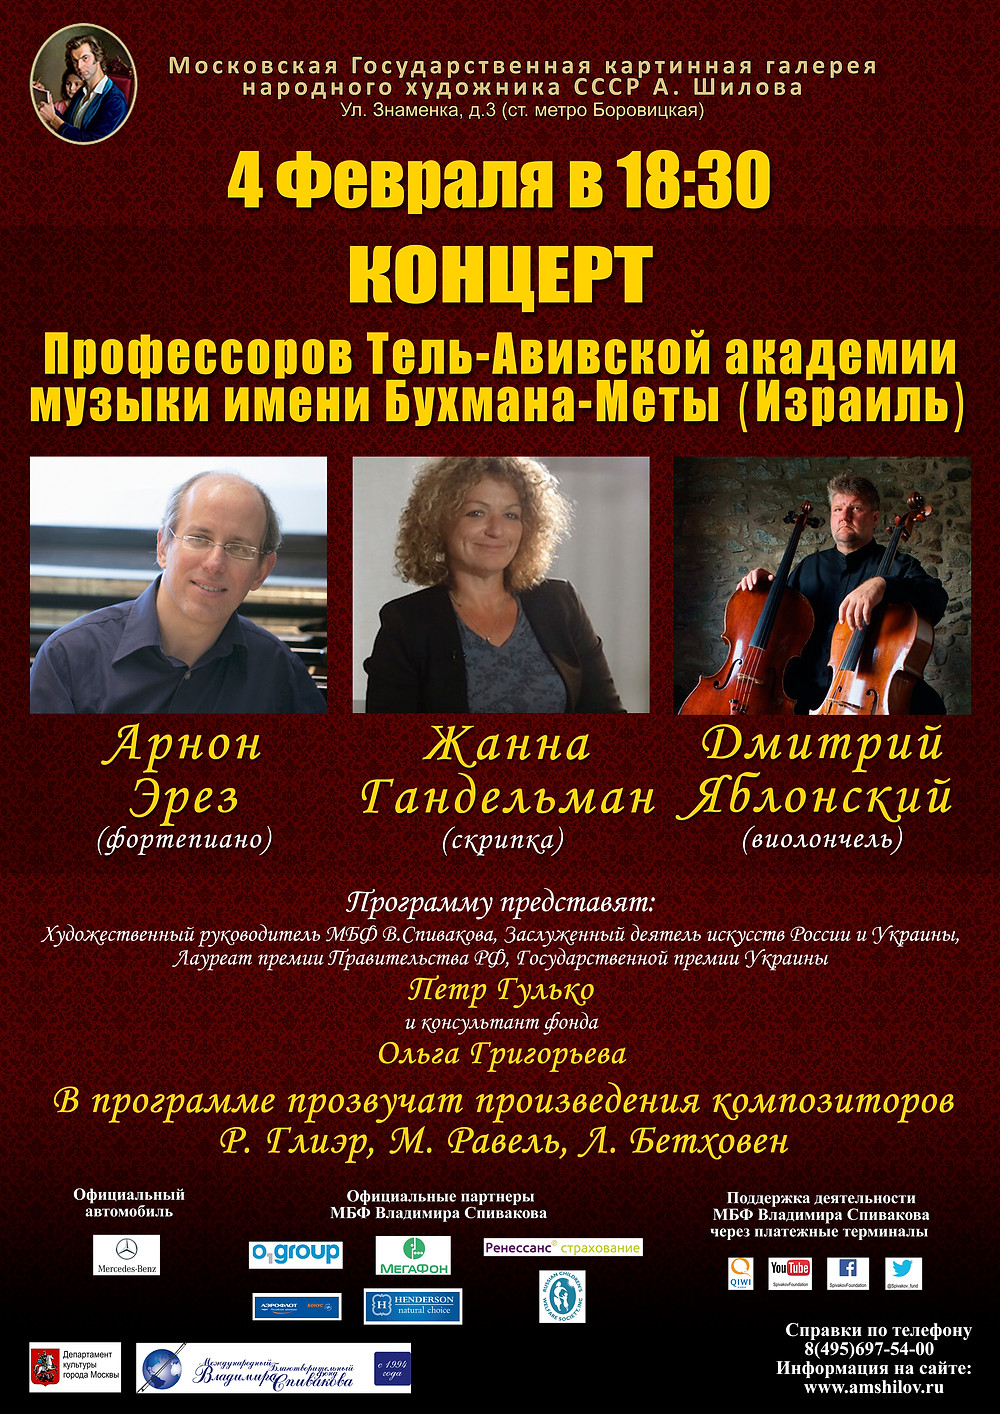 yablonsky moscow concert